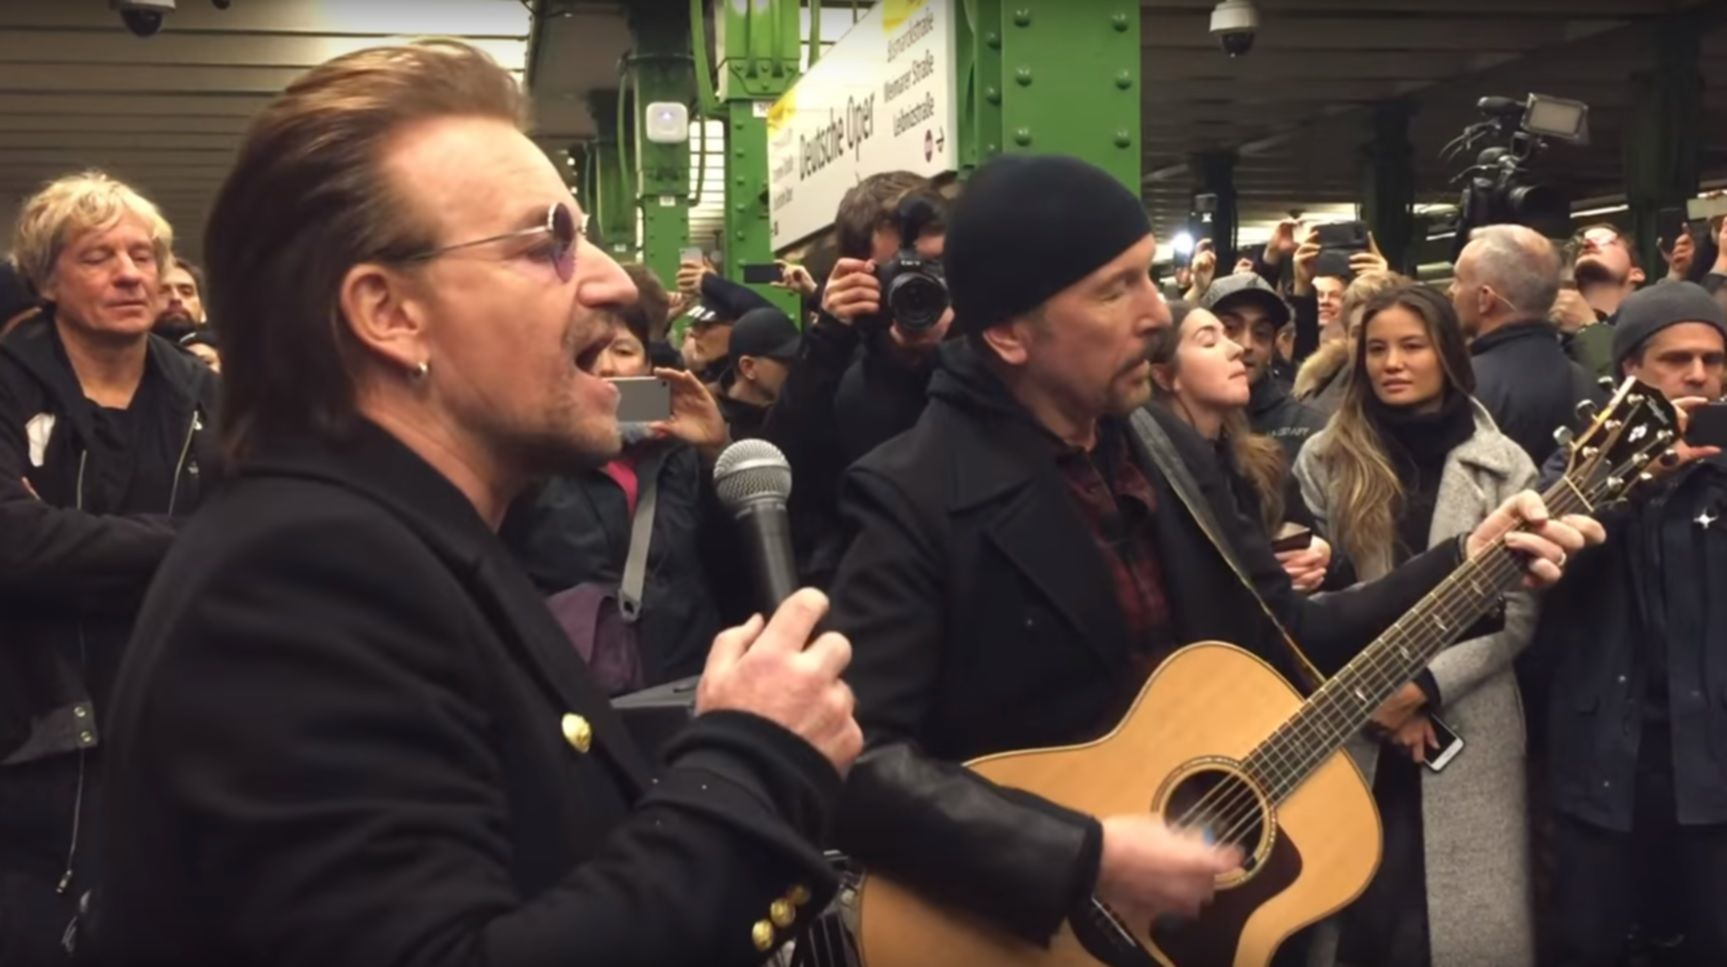 Bono The Edge U2 U-Bahn Berlin